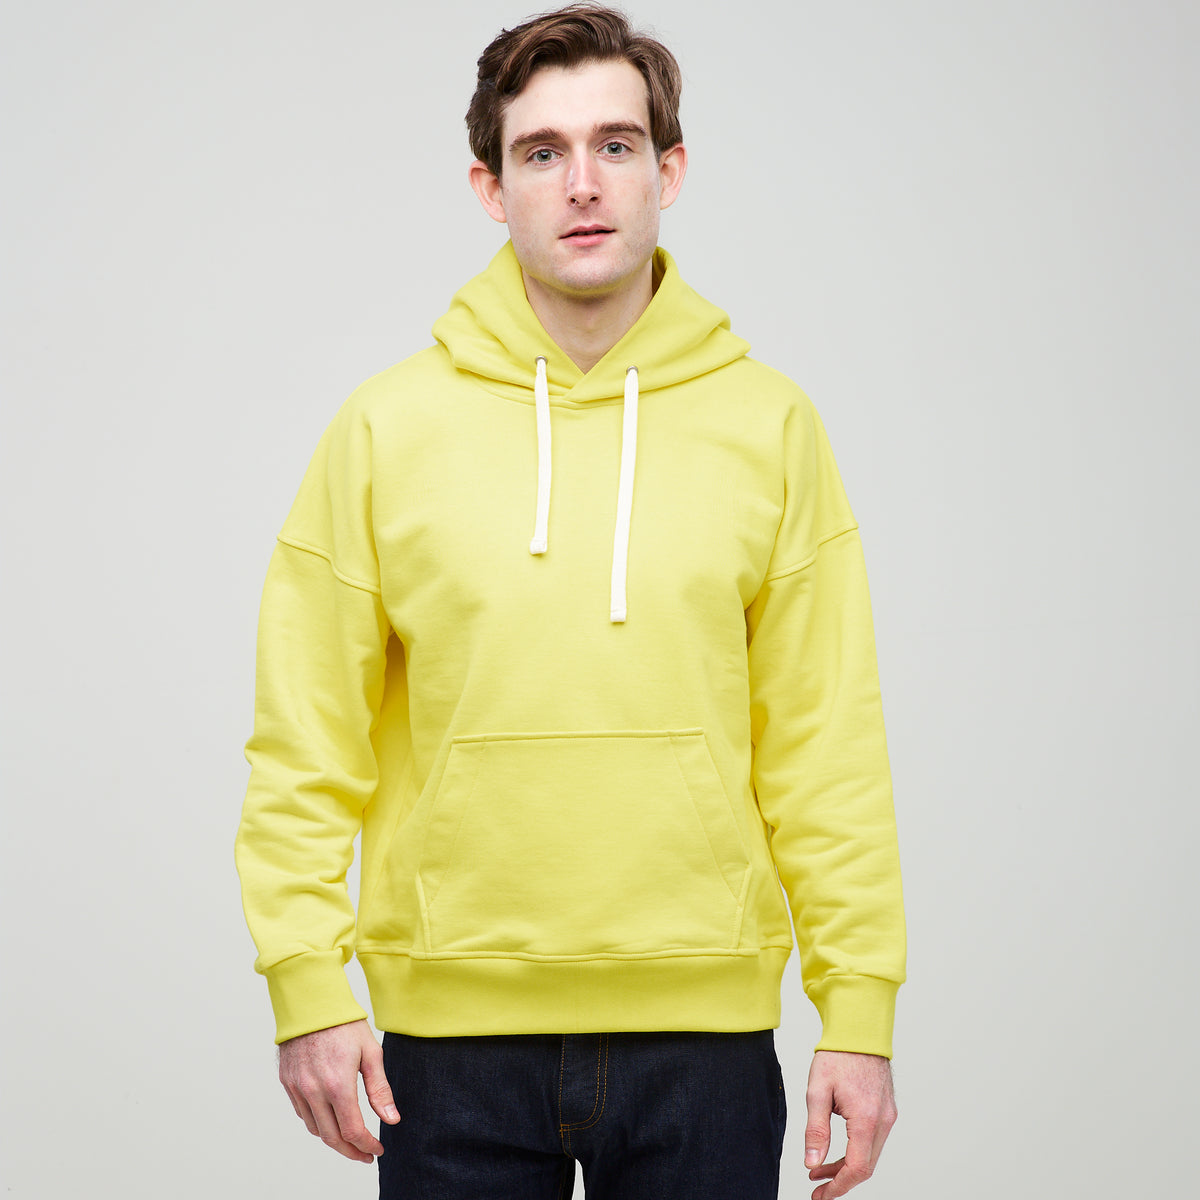 Men's Hooded Sweatshirt Canary Yellow - Community Clothing